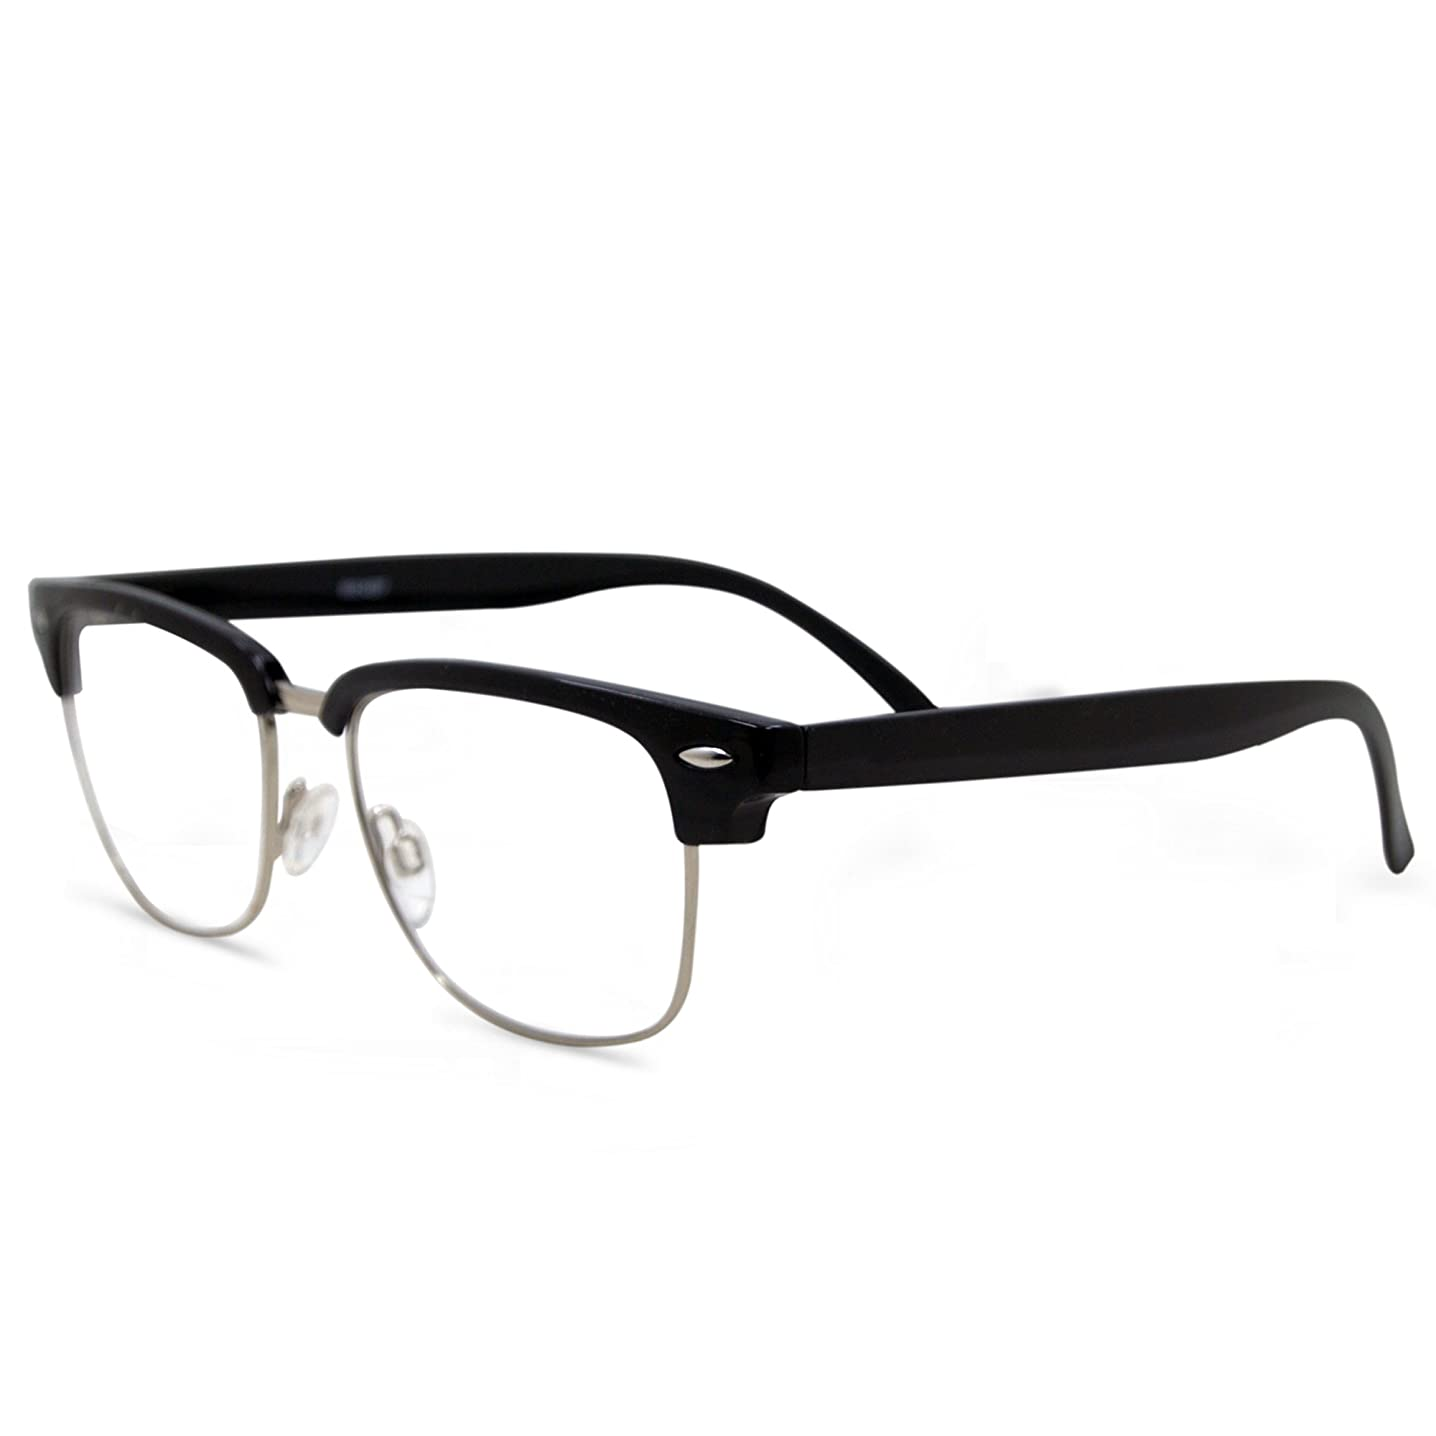 In Style Eyes Sellecks Bifocal Reading Glasses for Both Men & Women